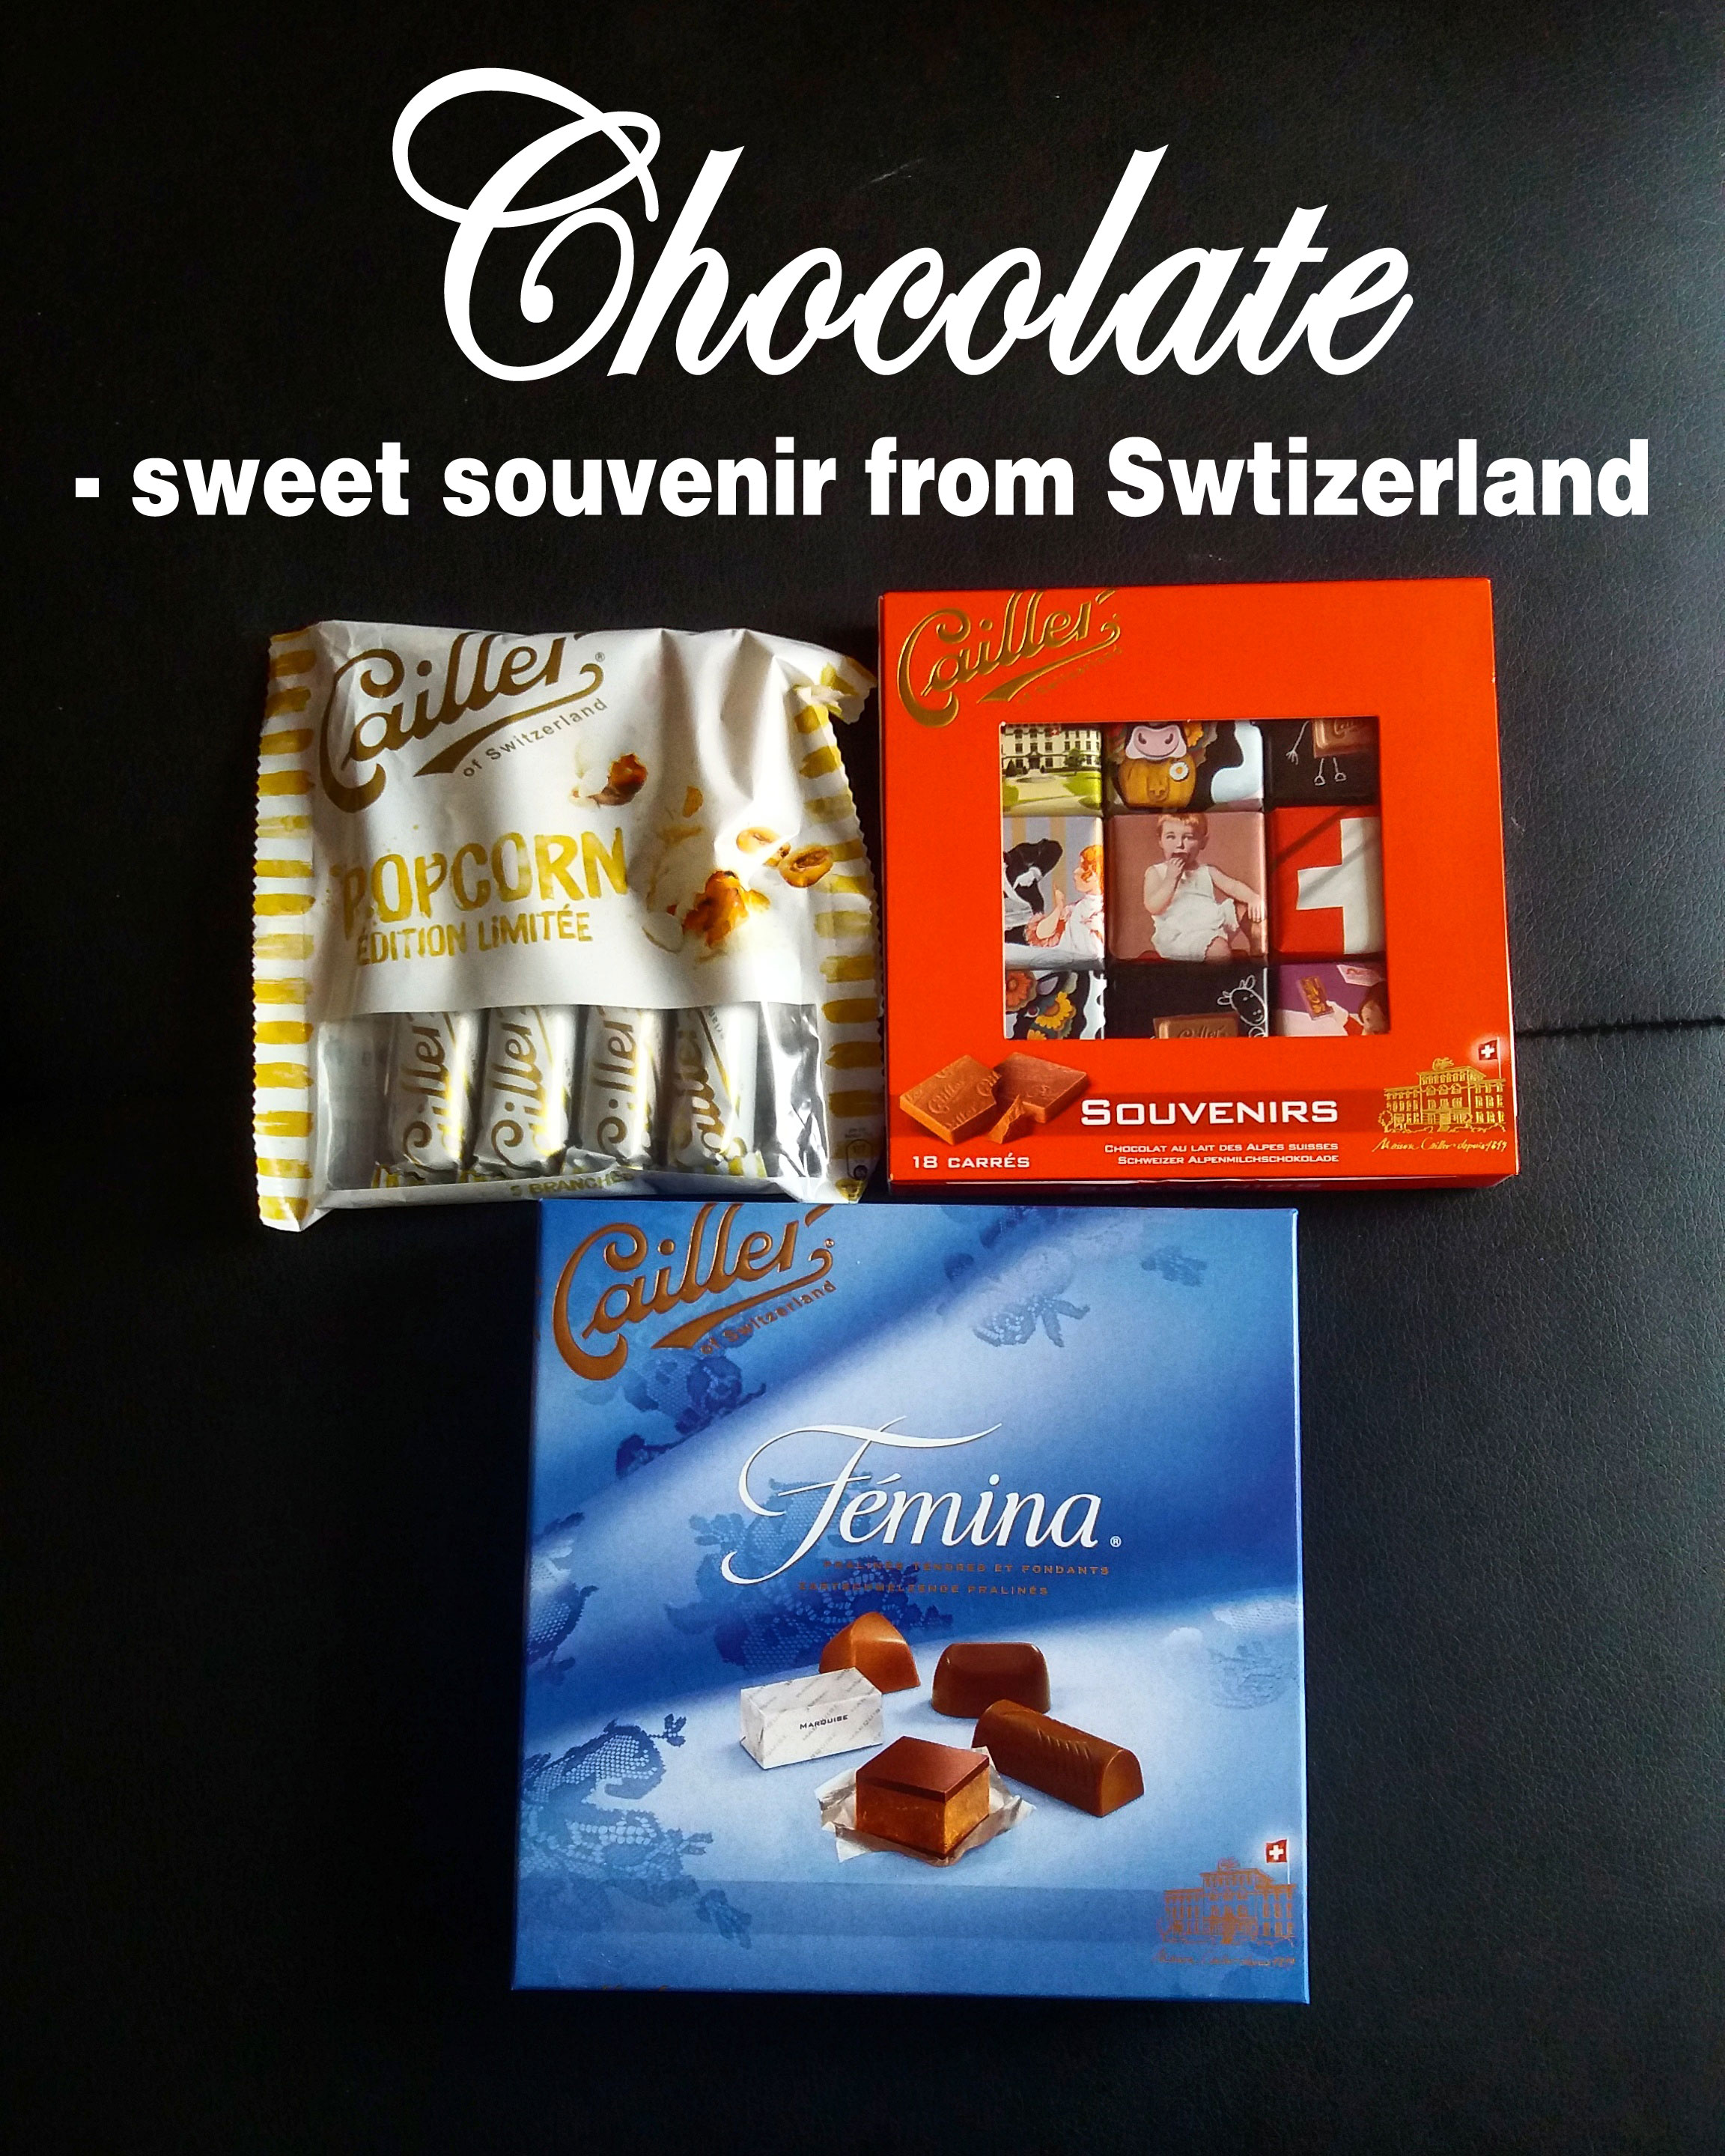 Chocolate - sweet souvenir from Switzerland